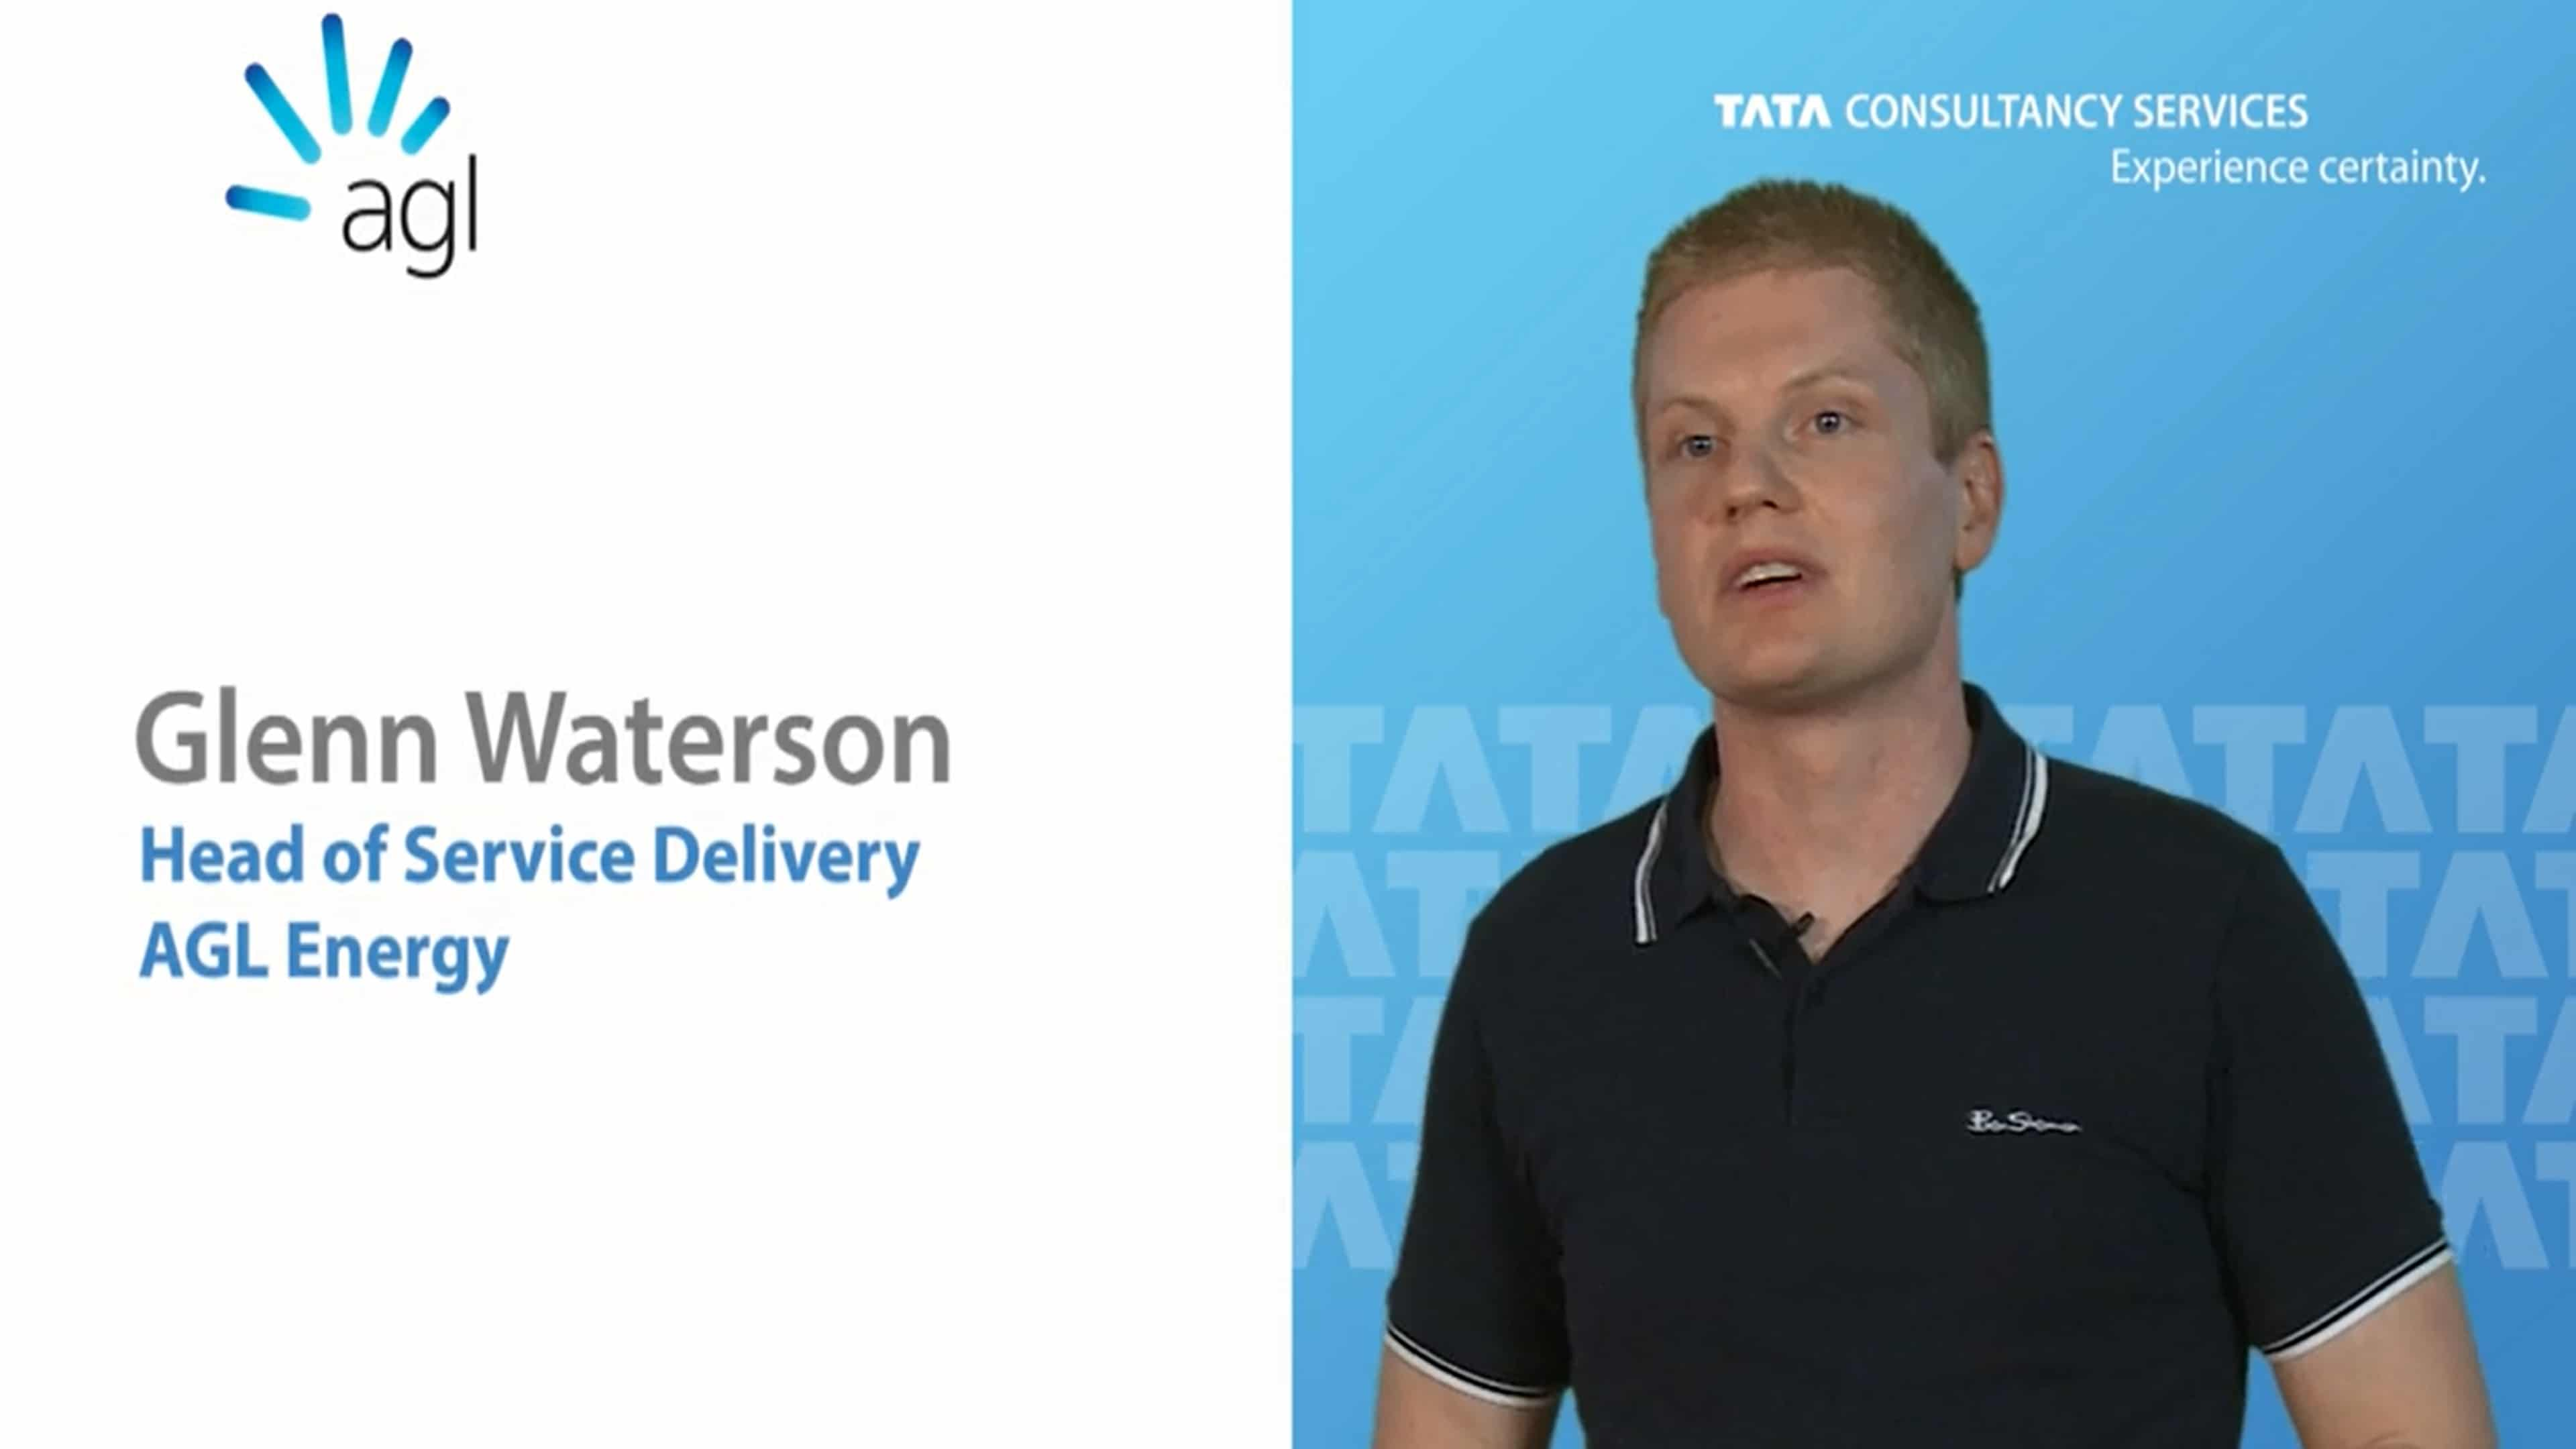 Agl Energy Relies On Tcs To Deliver Excellent Customer Experience